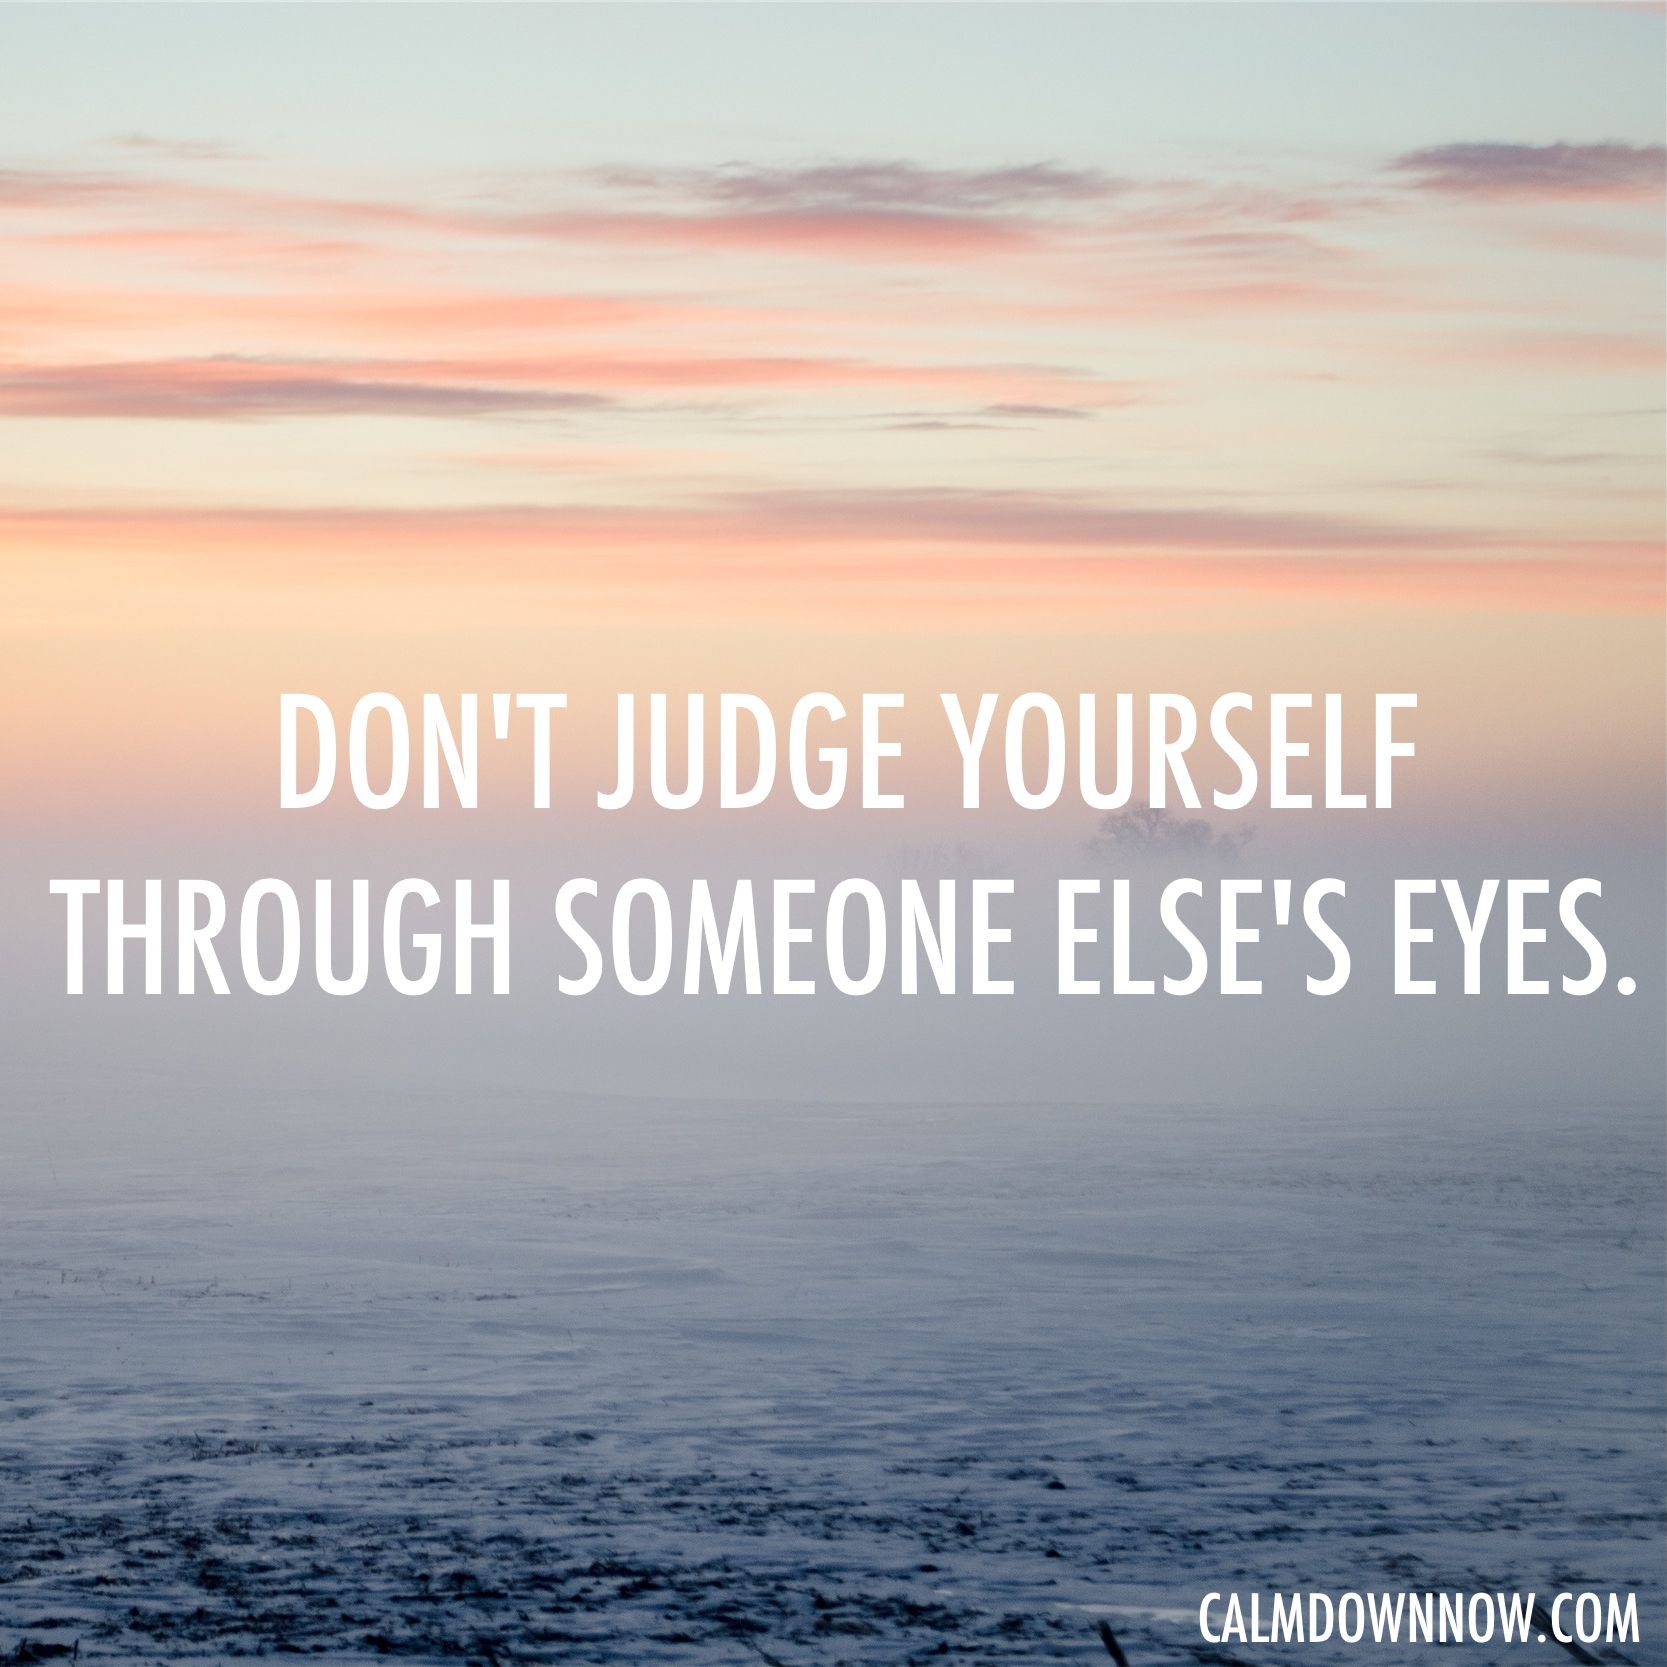 Don't judge yourself through someone else's eyes.